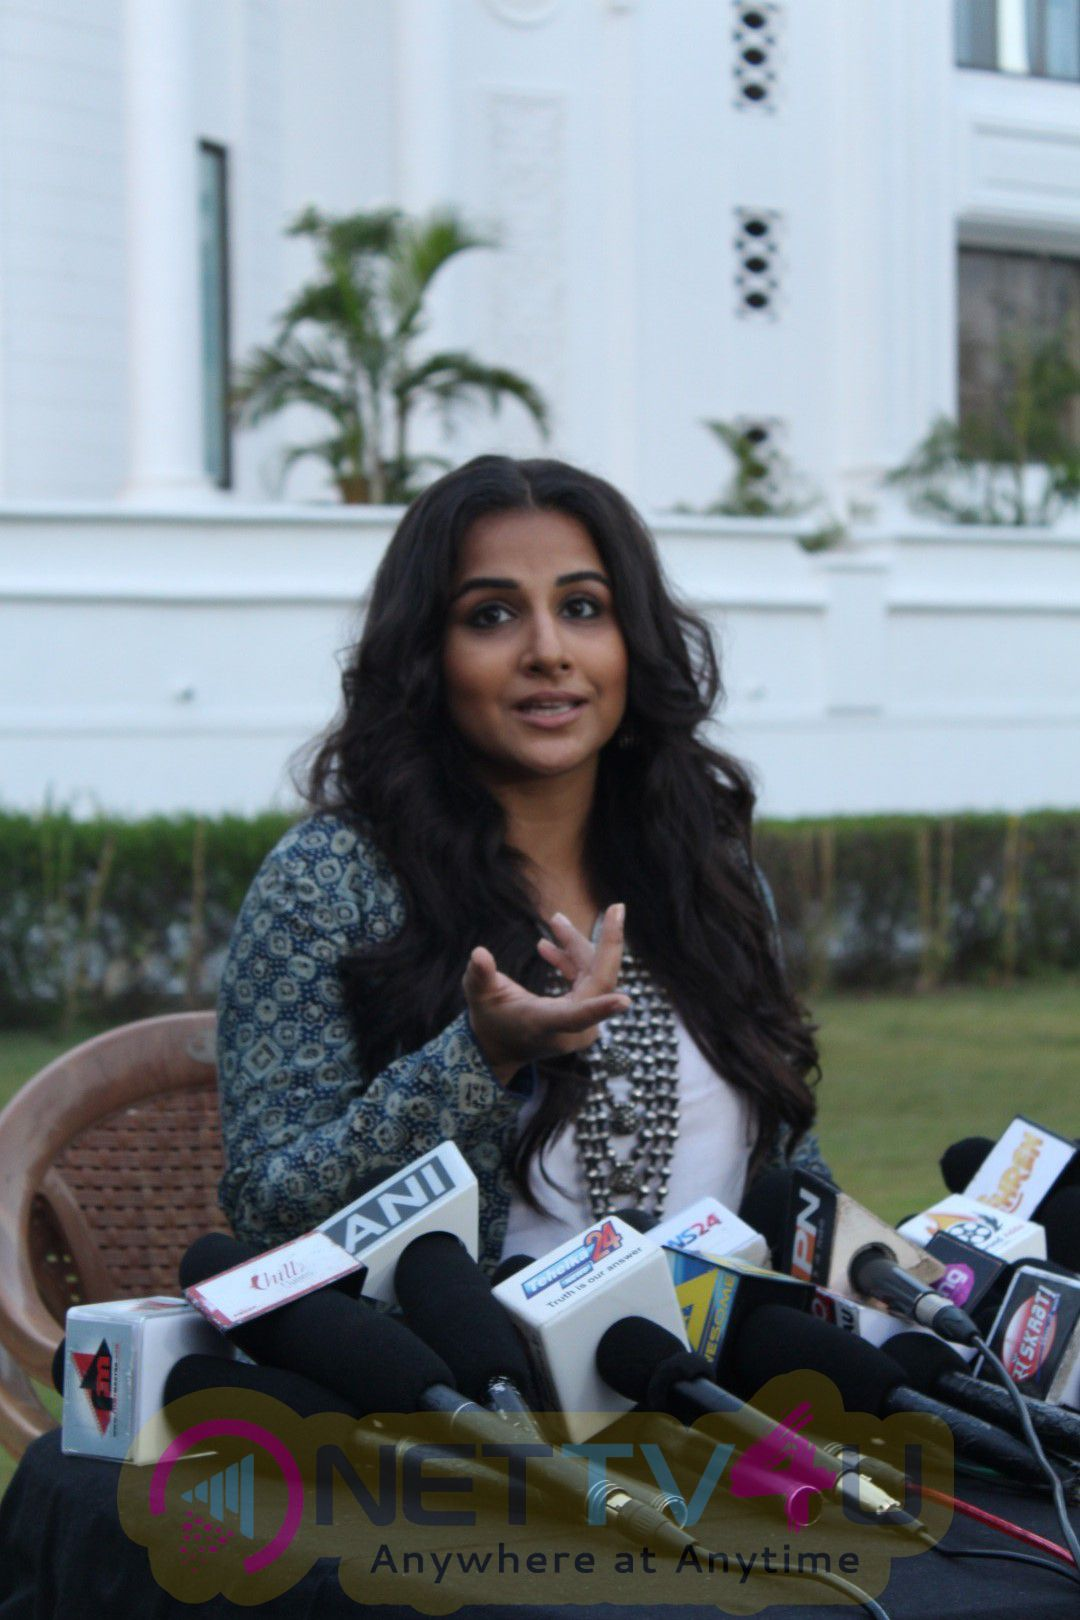 Vidya Balan Shoot Savdhaan India Promotion Episode For Movie Kahani 2 Photos